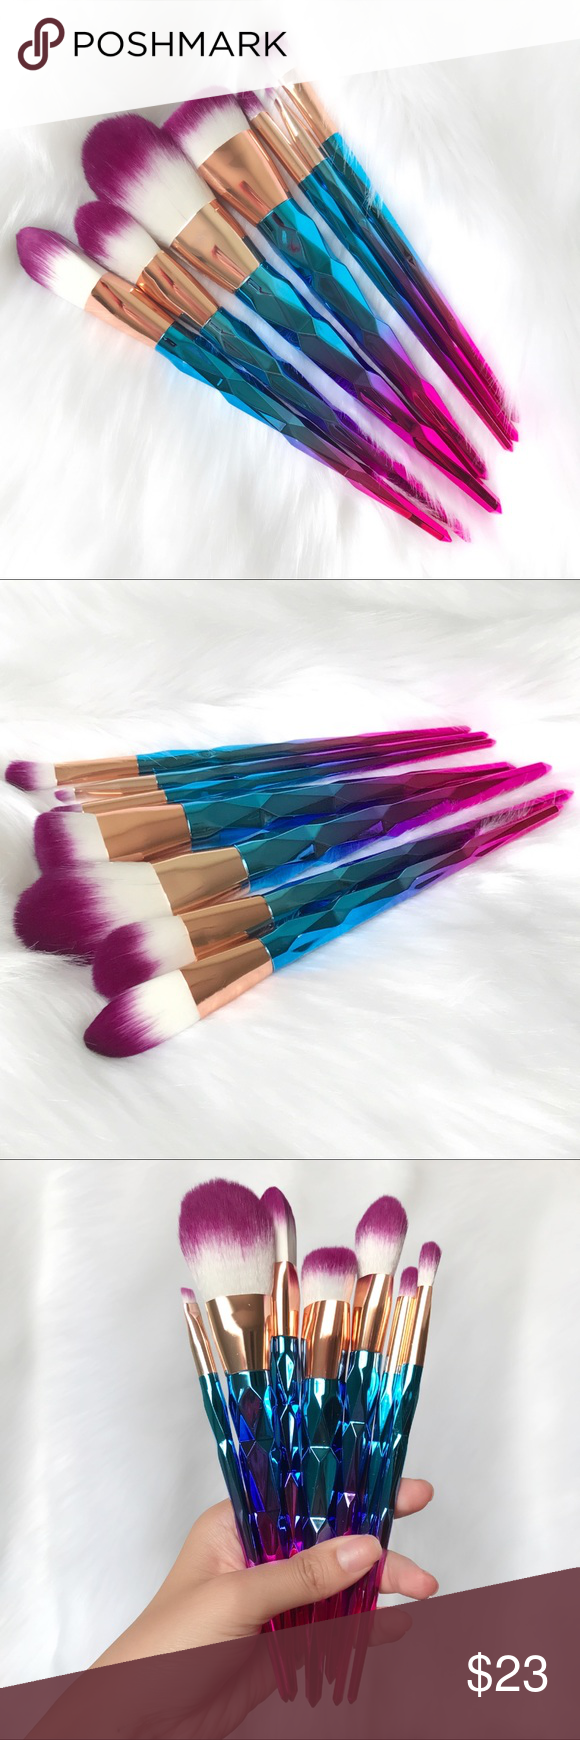 7pcs ombré makeup brushes New! Available and ready to ship